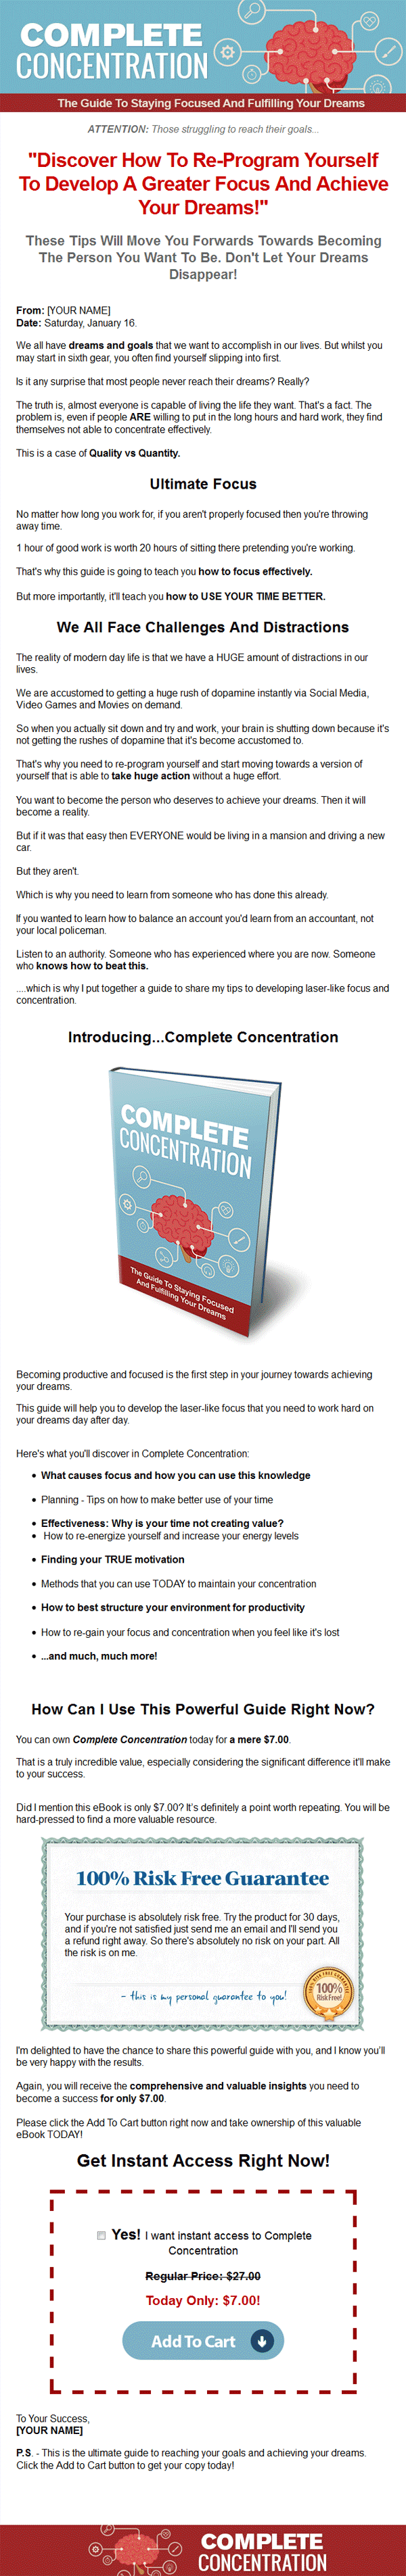 complete concentration ebook